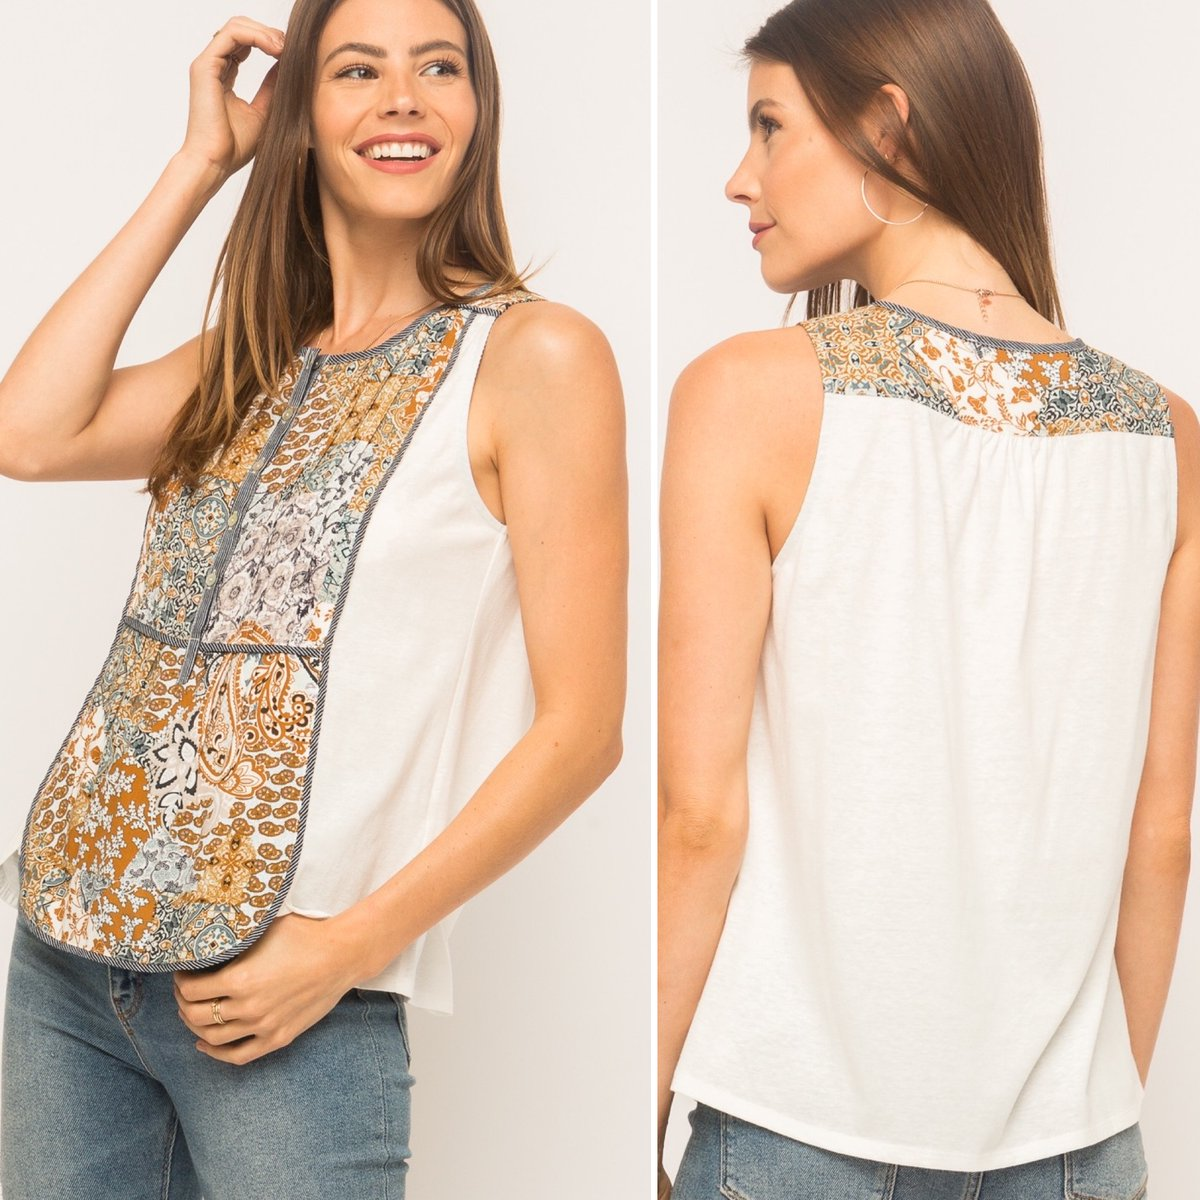 Summer style at its best - a simple tank with fabulous details!  Order here  w/free shipping. #allinspired #wherestylemeetsgrace #tops #summerstyle #casualstyle #everydaystyle #fashion #fashionista #boutiqueshopping #shoplocal #shopsmall